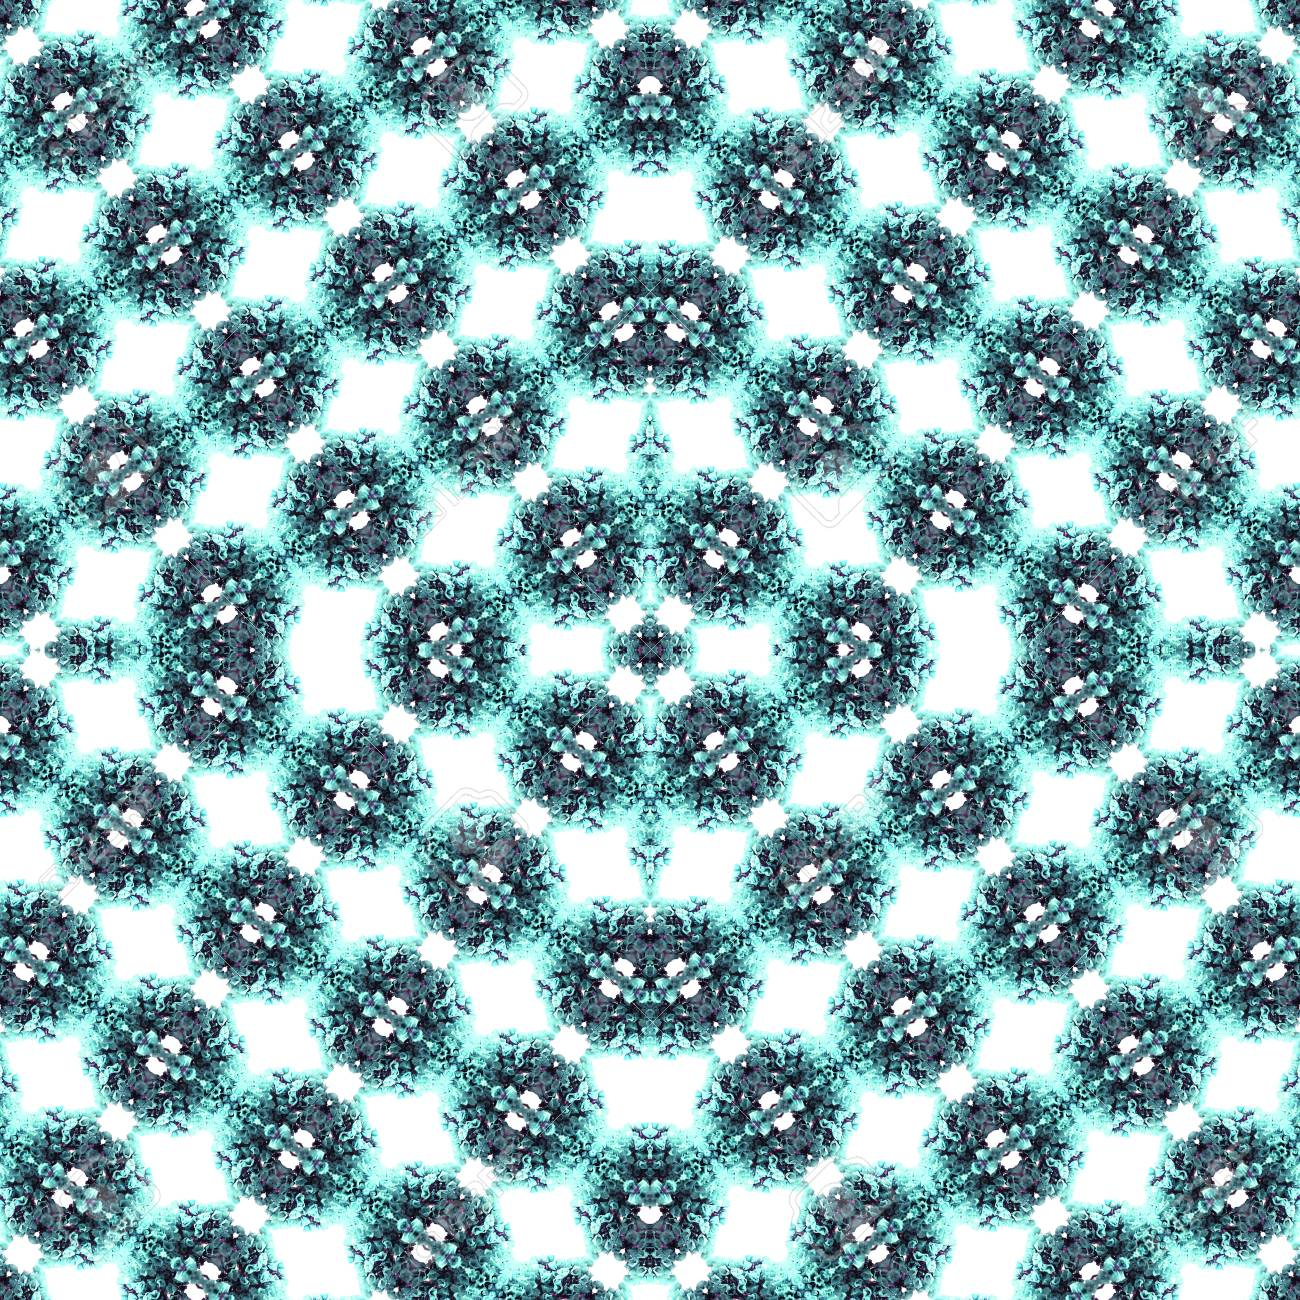 Abstract flowers seamless pattern background. Kaleidoscope from flowers. Hydraulic tile design. - 104075027